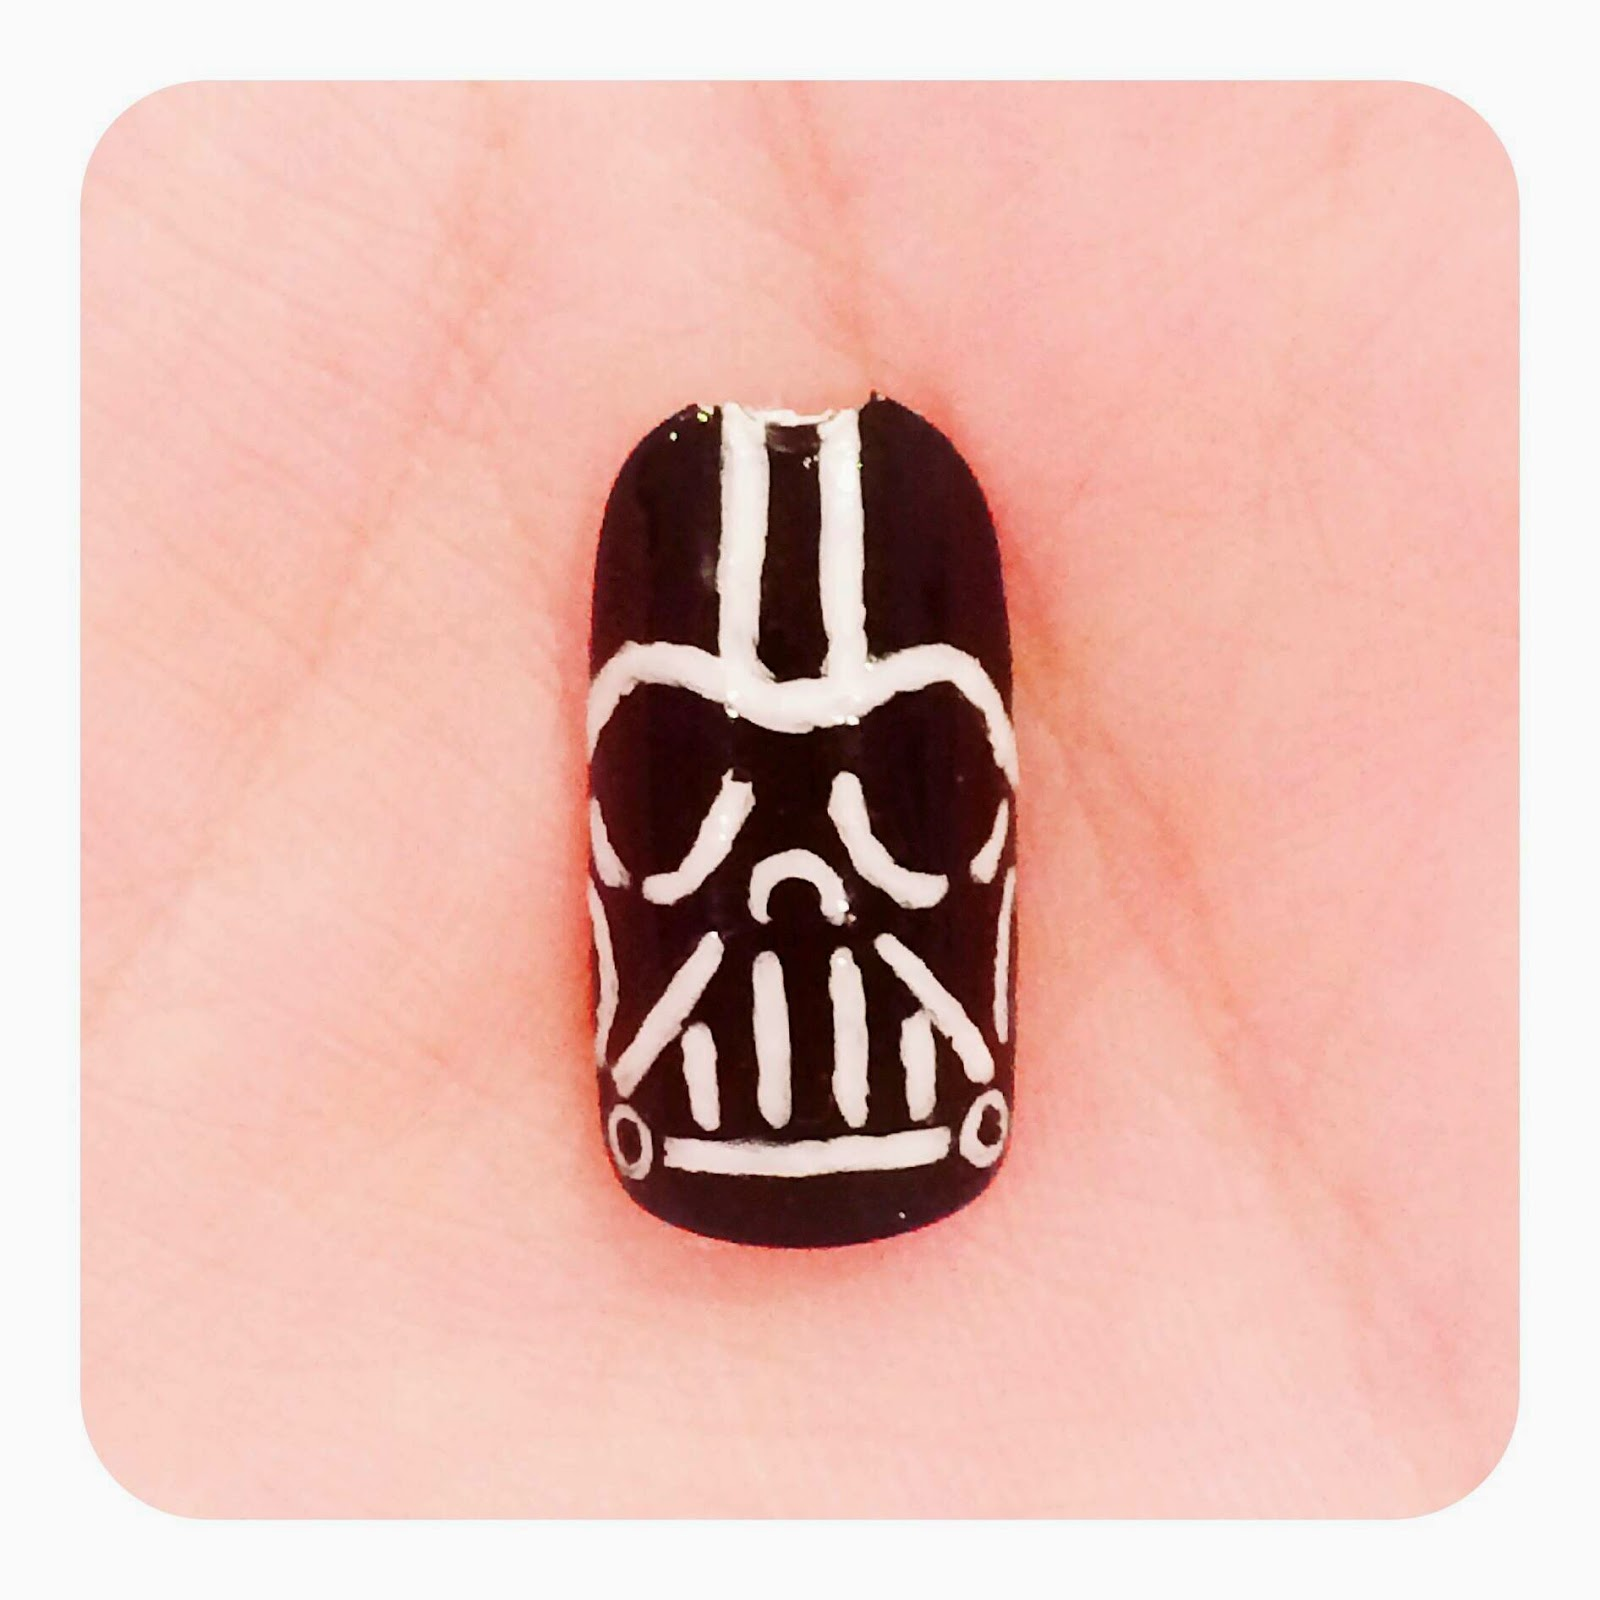 The Polish Geek: Star Wars Darth Vader inspired nail art (Tutorial)!!